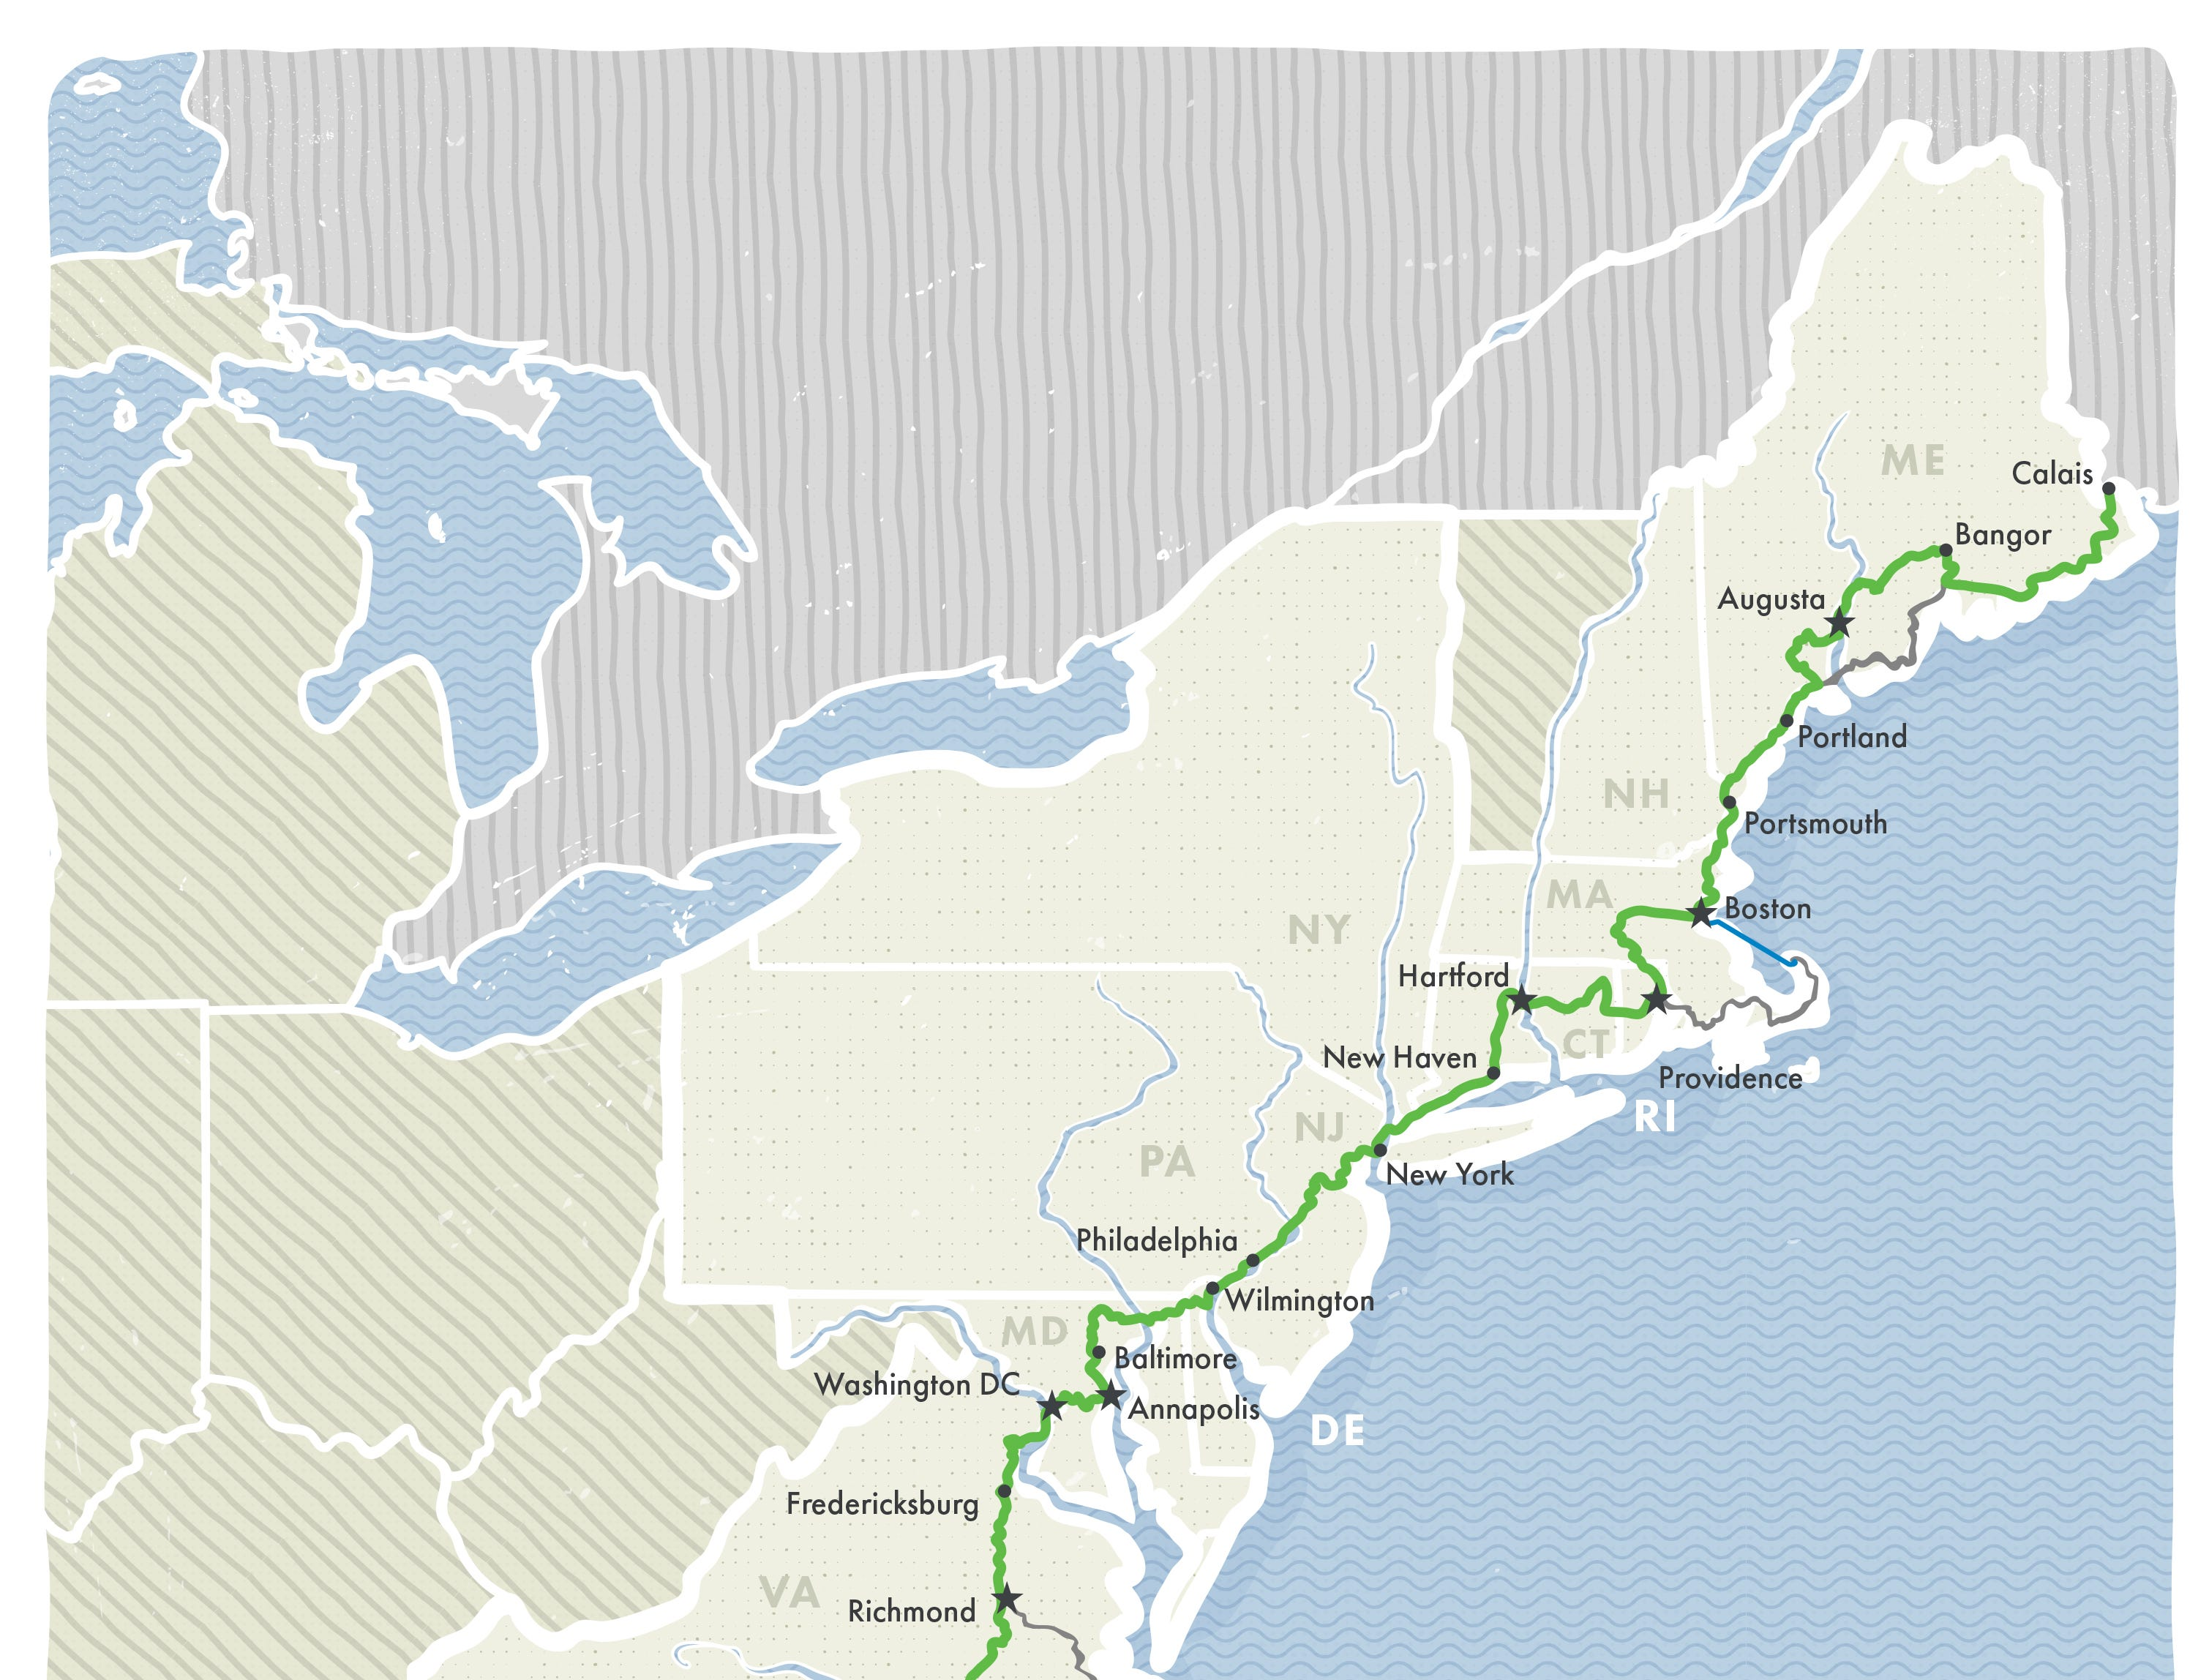 The 3,000-mile East Coast Greenway connects biking and walking paths and will eventually create a park from Maine to Florida.